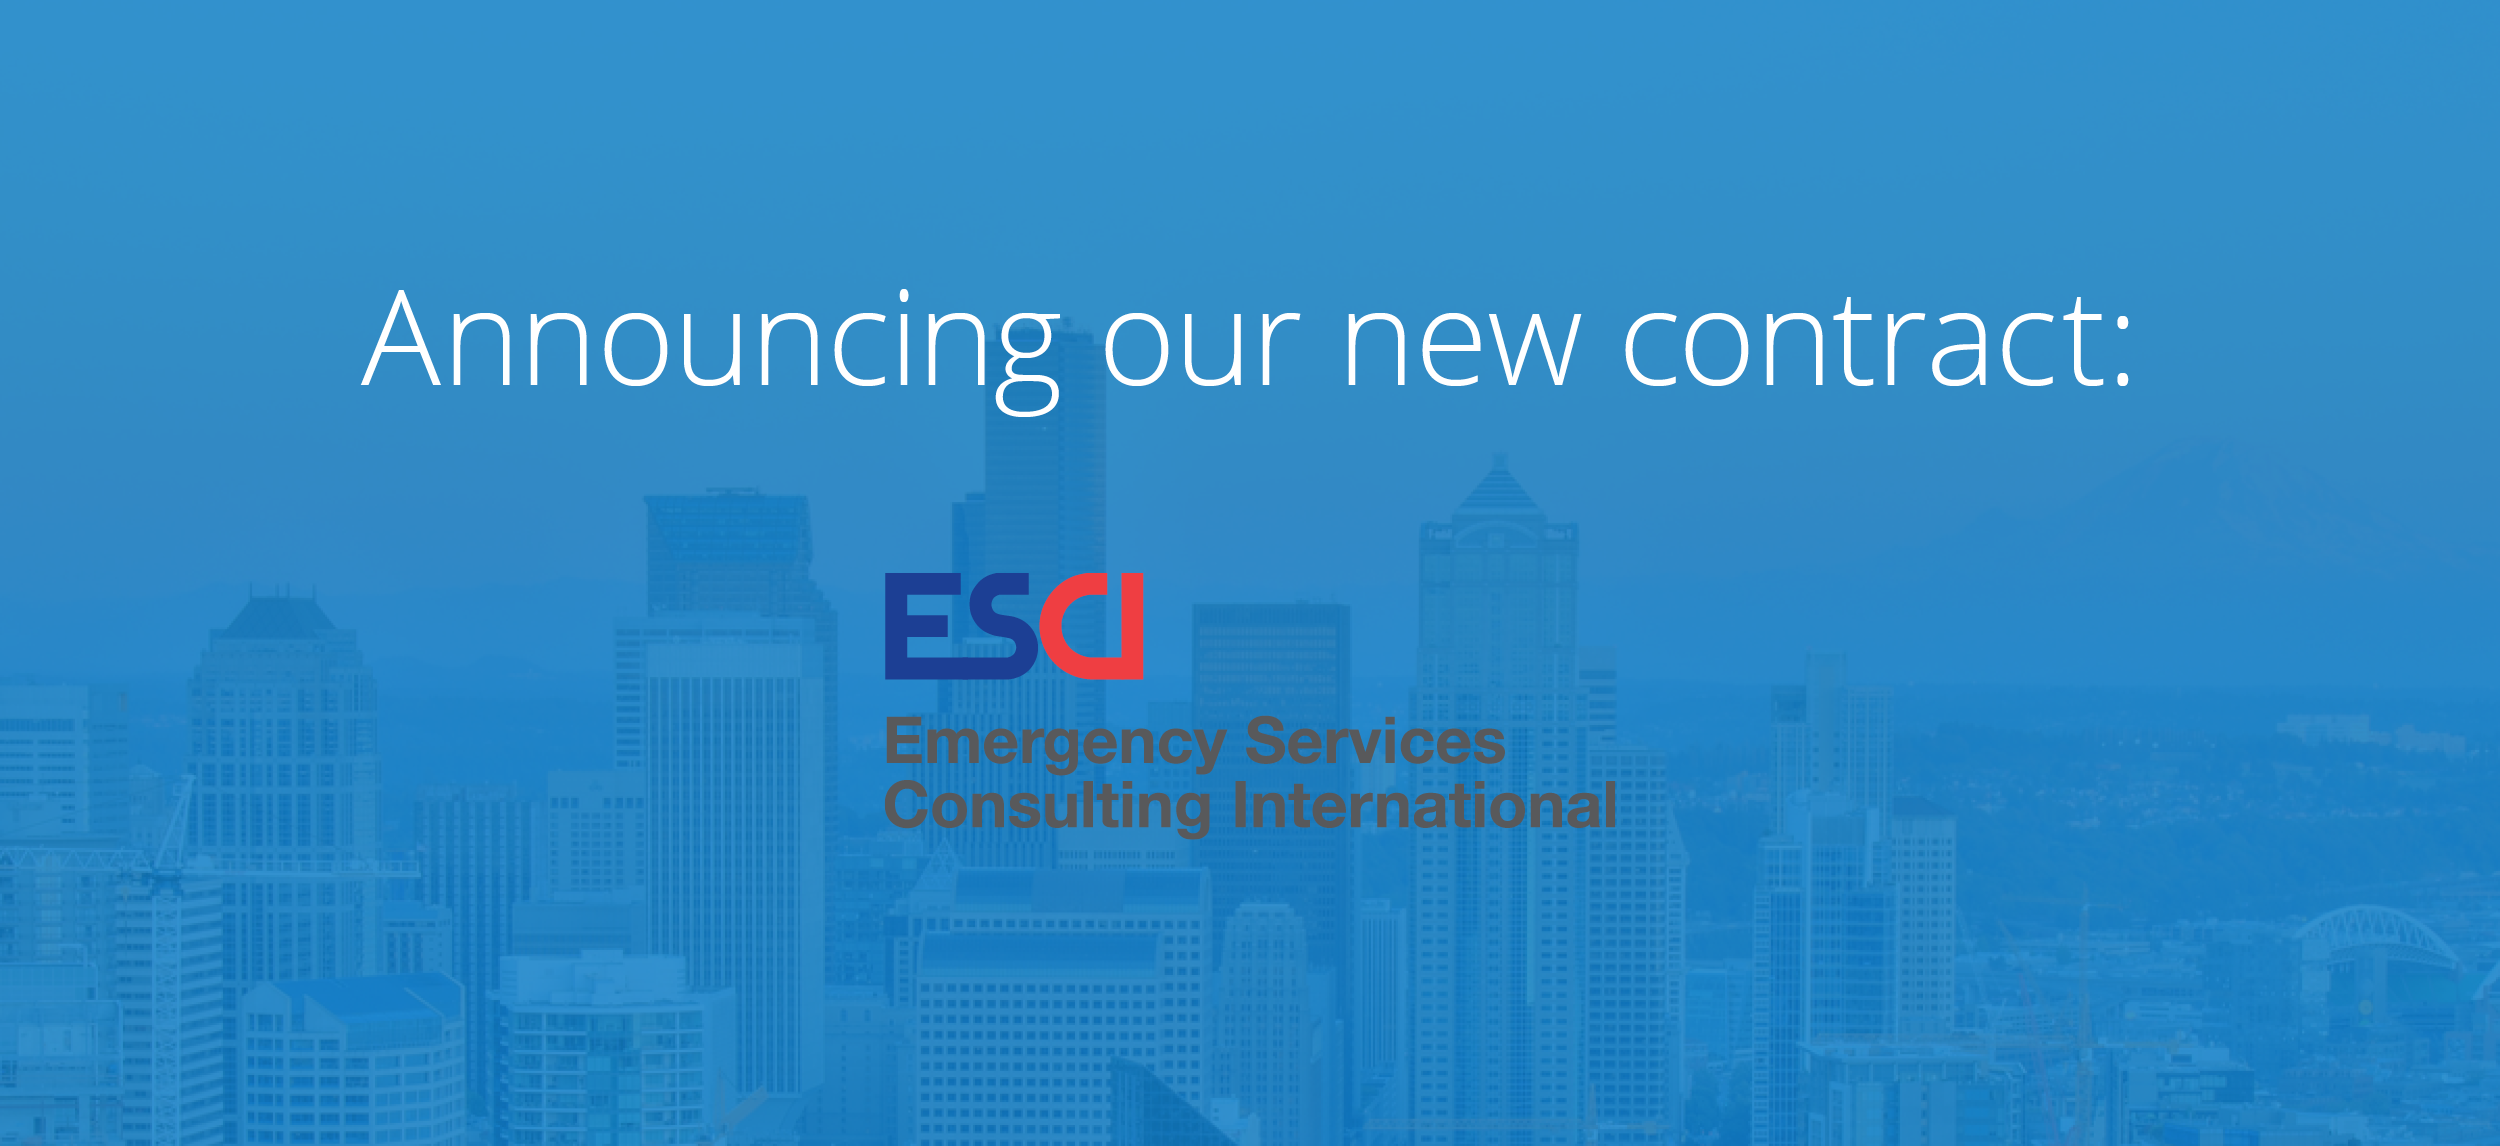 Announcing Emergency Services Consulting International (ESCI): Our Newest Contract